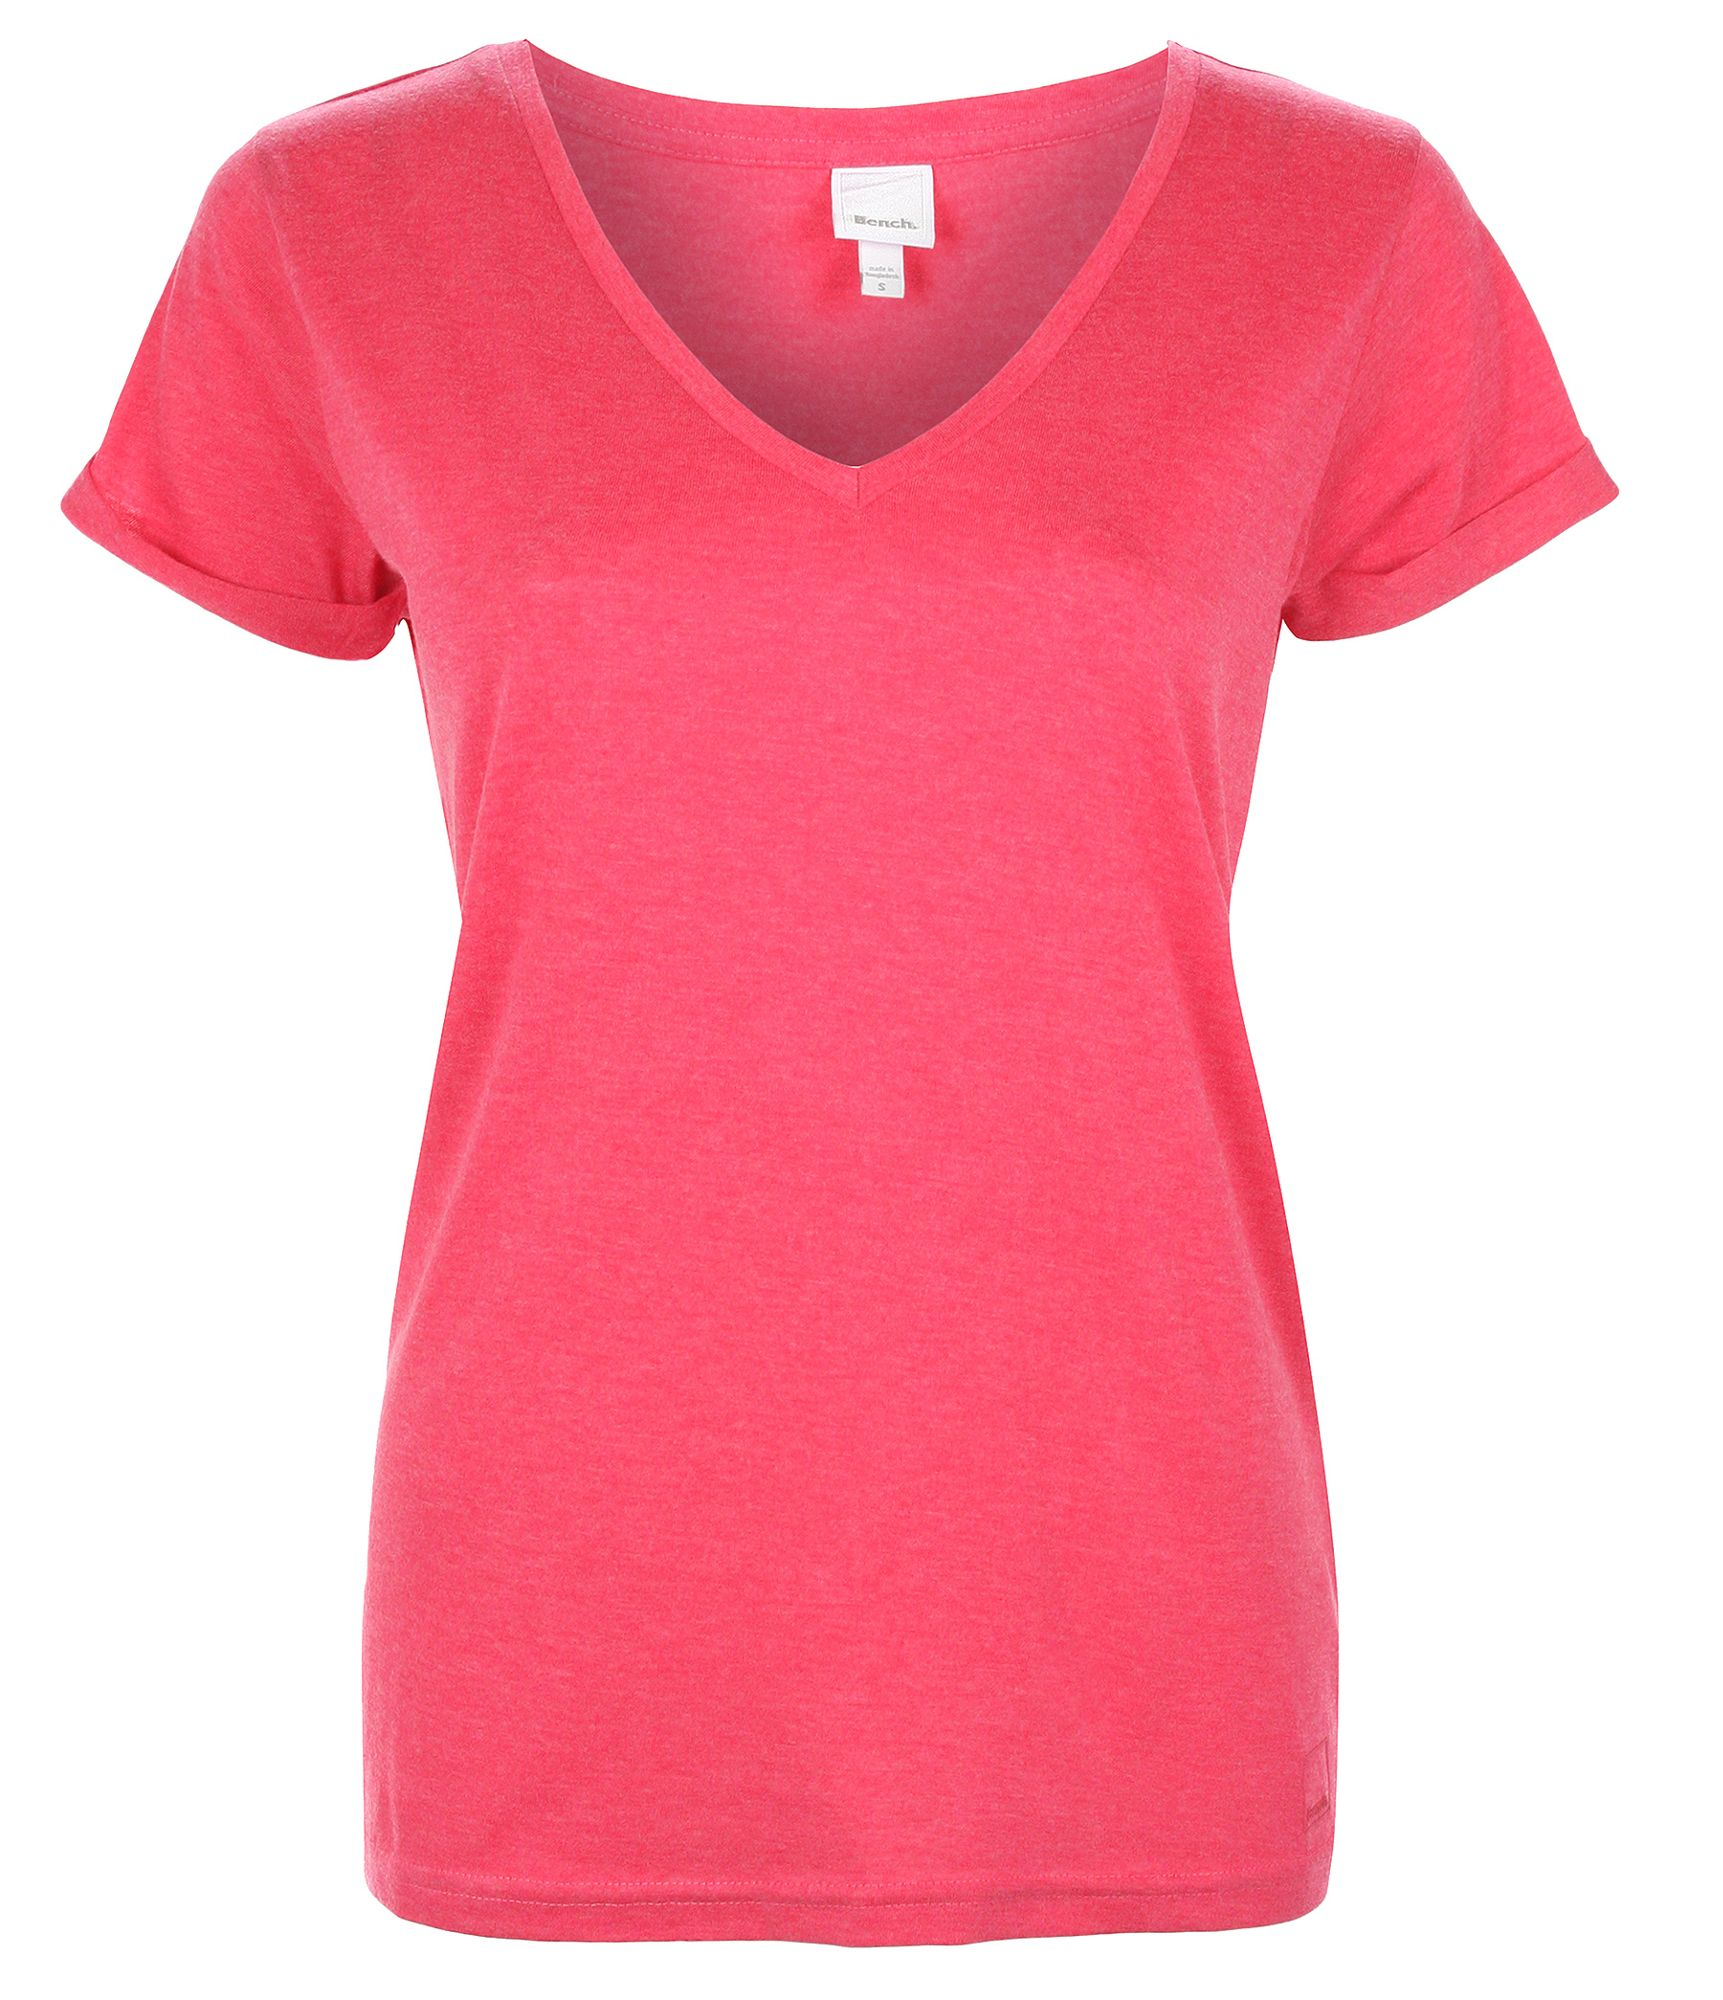 bench womens the v tee v neck t shirt in pink lyst. Black Bedroom Furniture Sets. Home Design Ideas